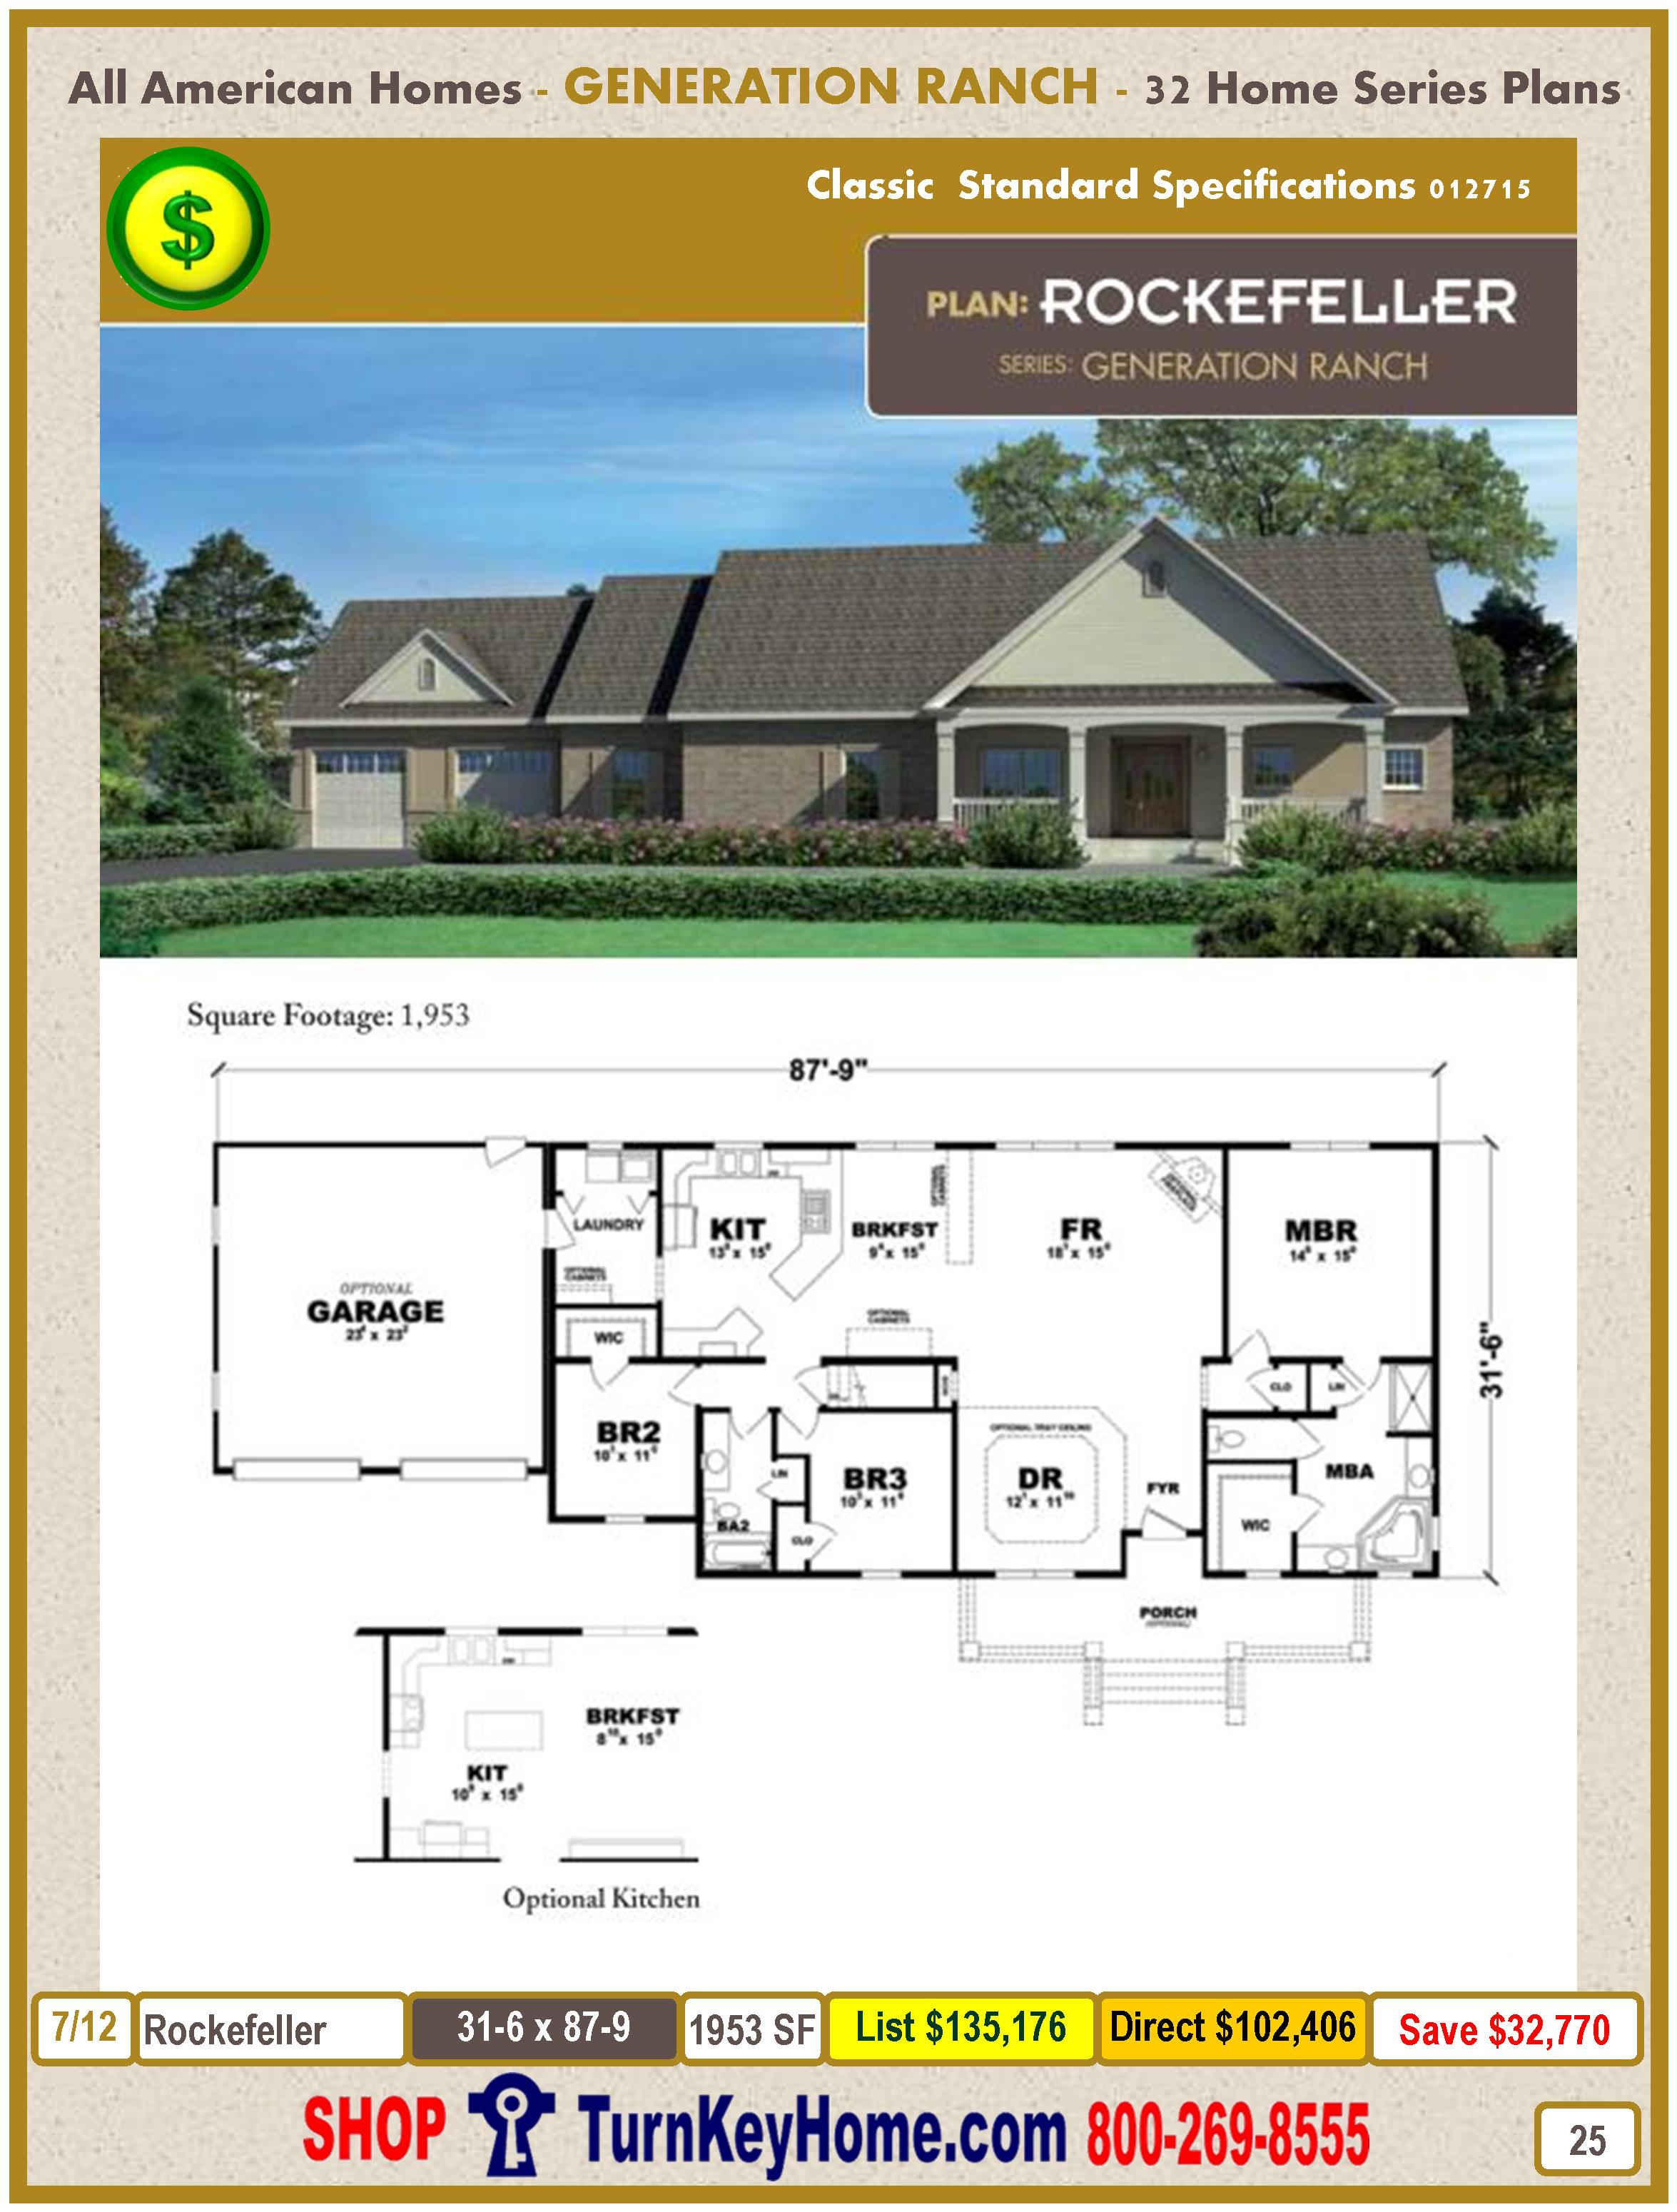 Modular.All.American.Homes.Generation.Ranch.Home.Series.Catalog.Page.25.Rockefeller.Direct.Price.021415